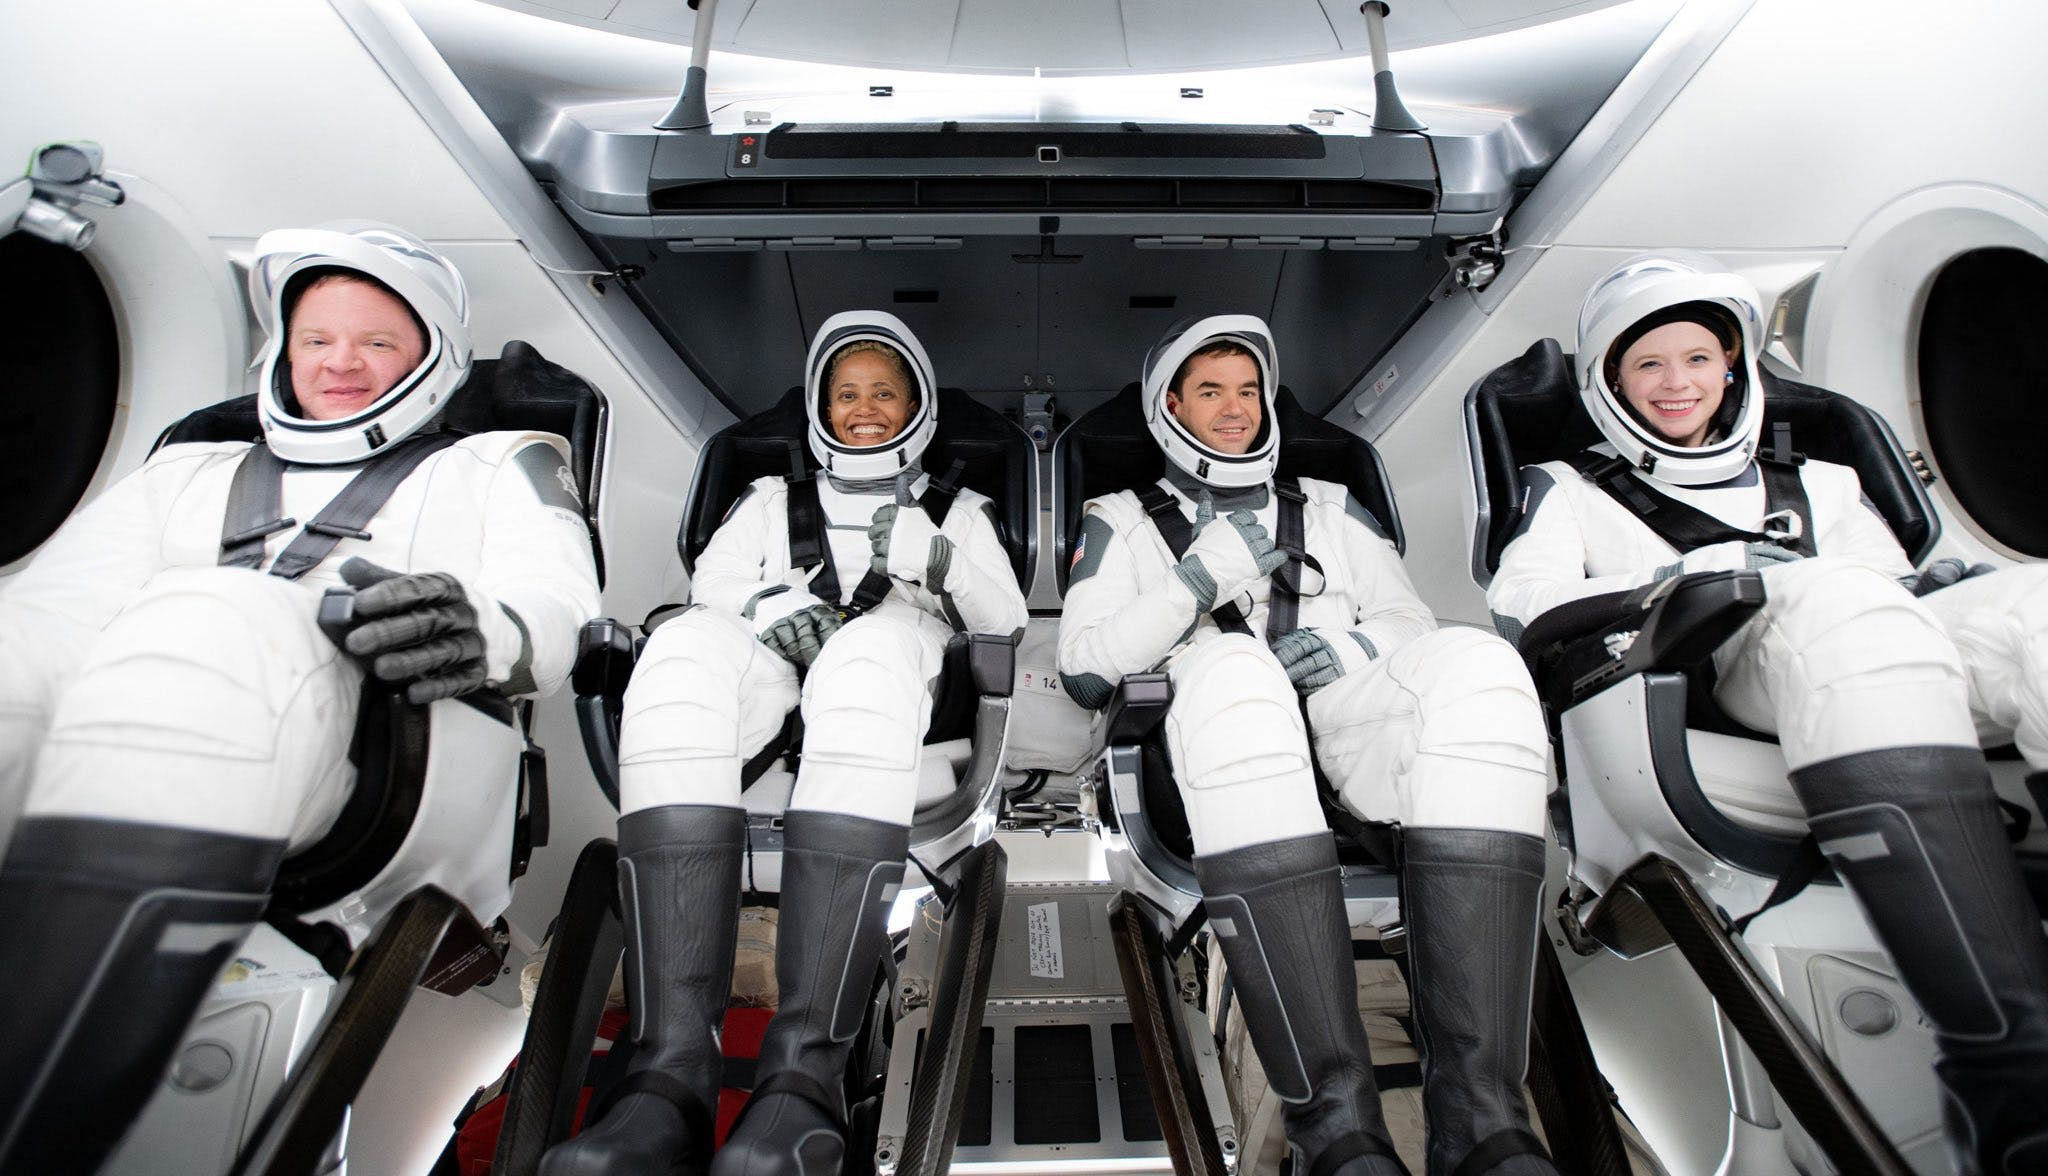 Why the SpaceX Inspiration4 mission matters to everyone - CNET